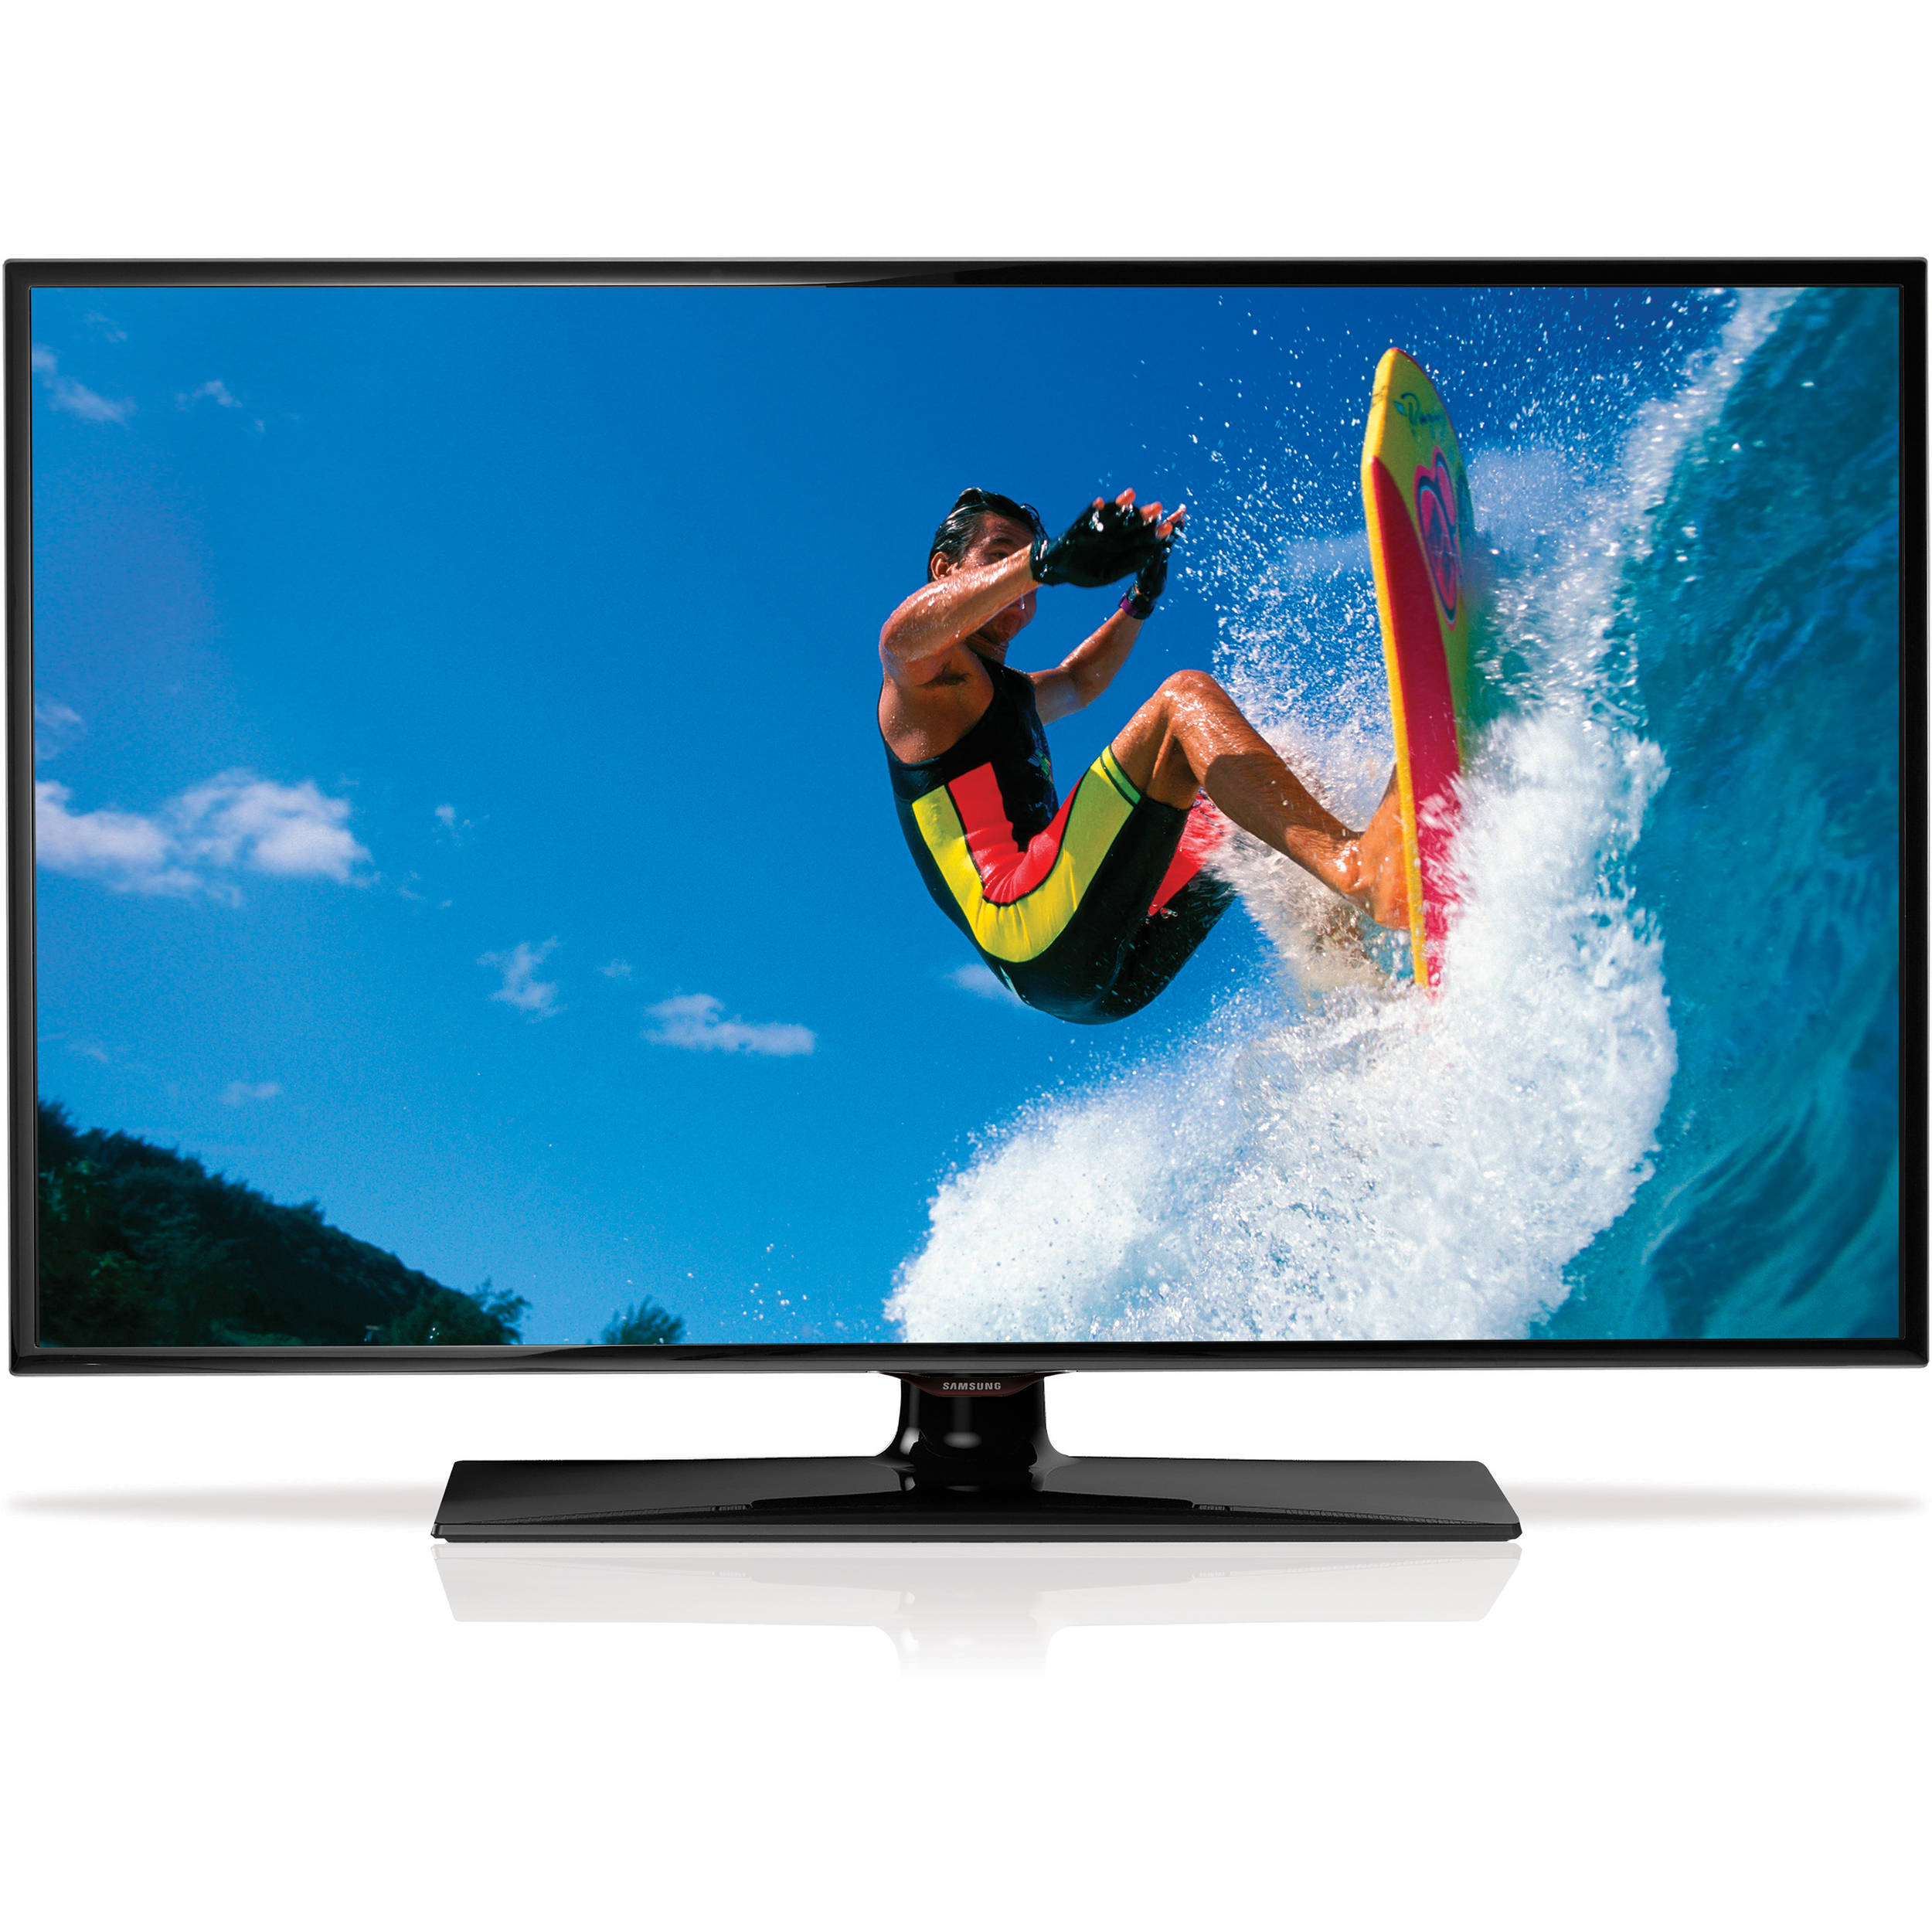 samsung 40 5000 full hd led tv un40f5000afxza b h photo. Black Bedroom Furniture Sets. Home Design Ideas